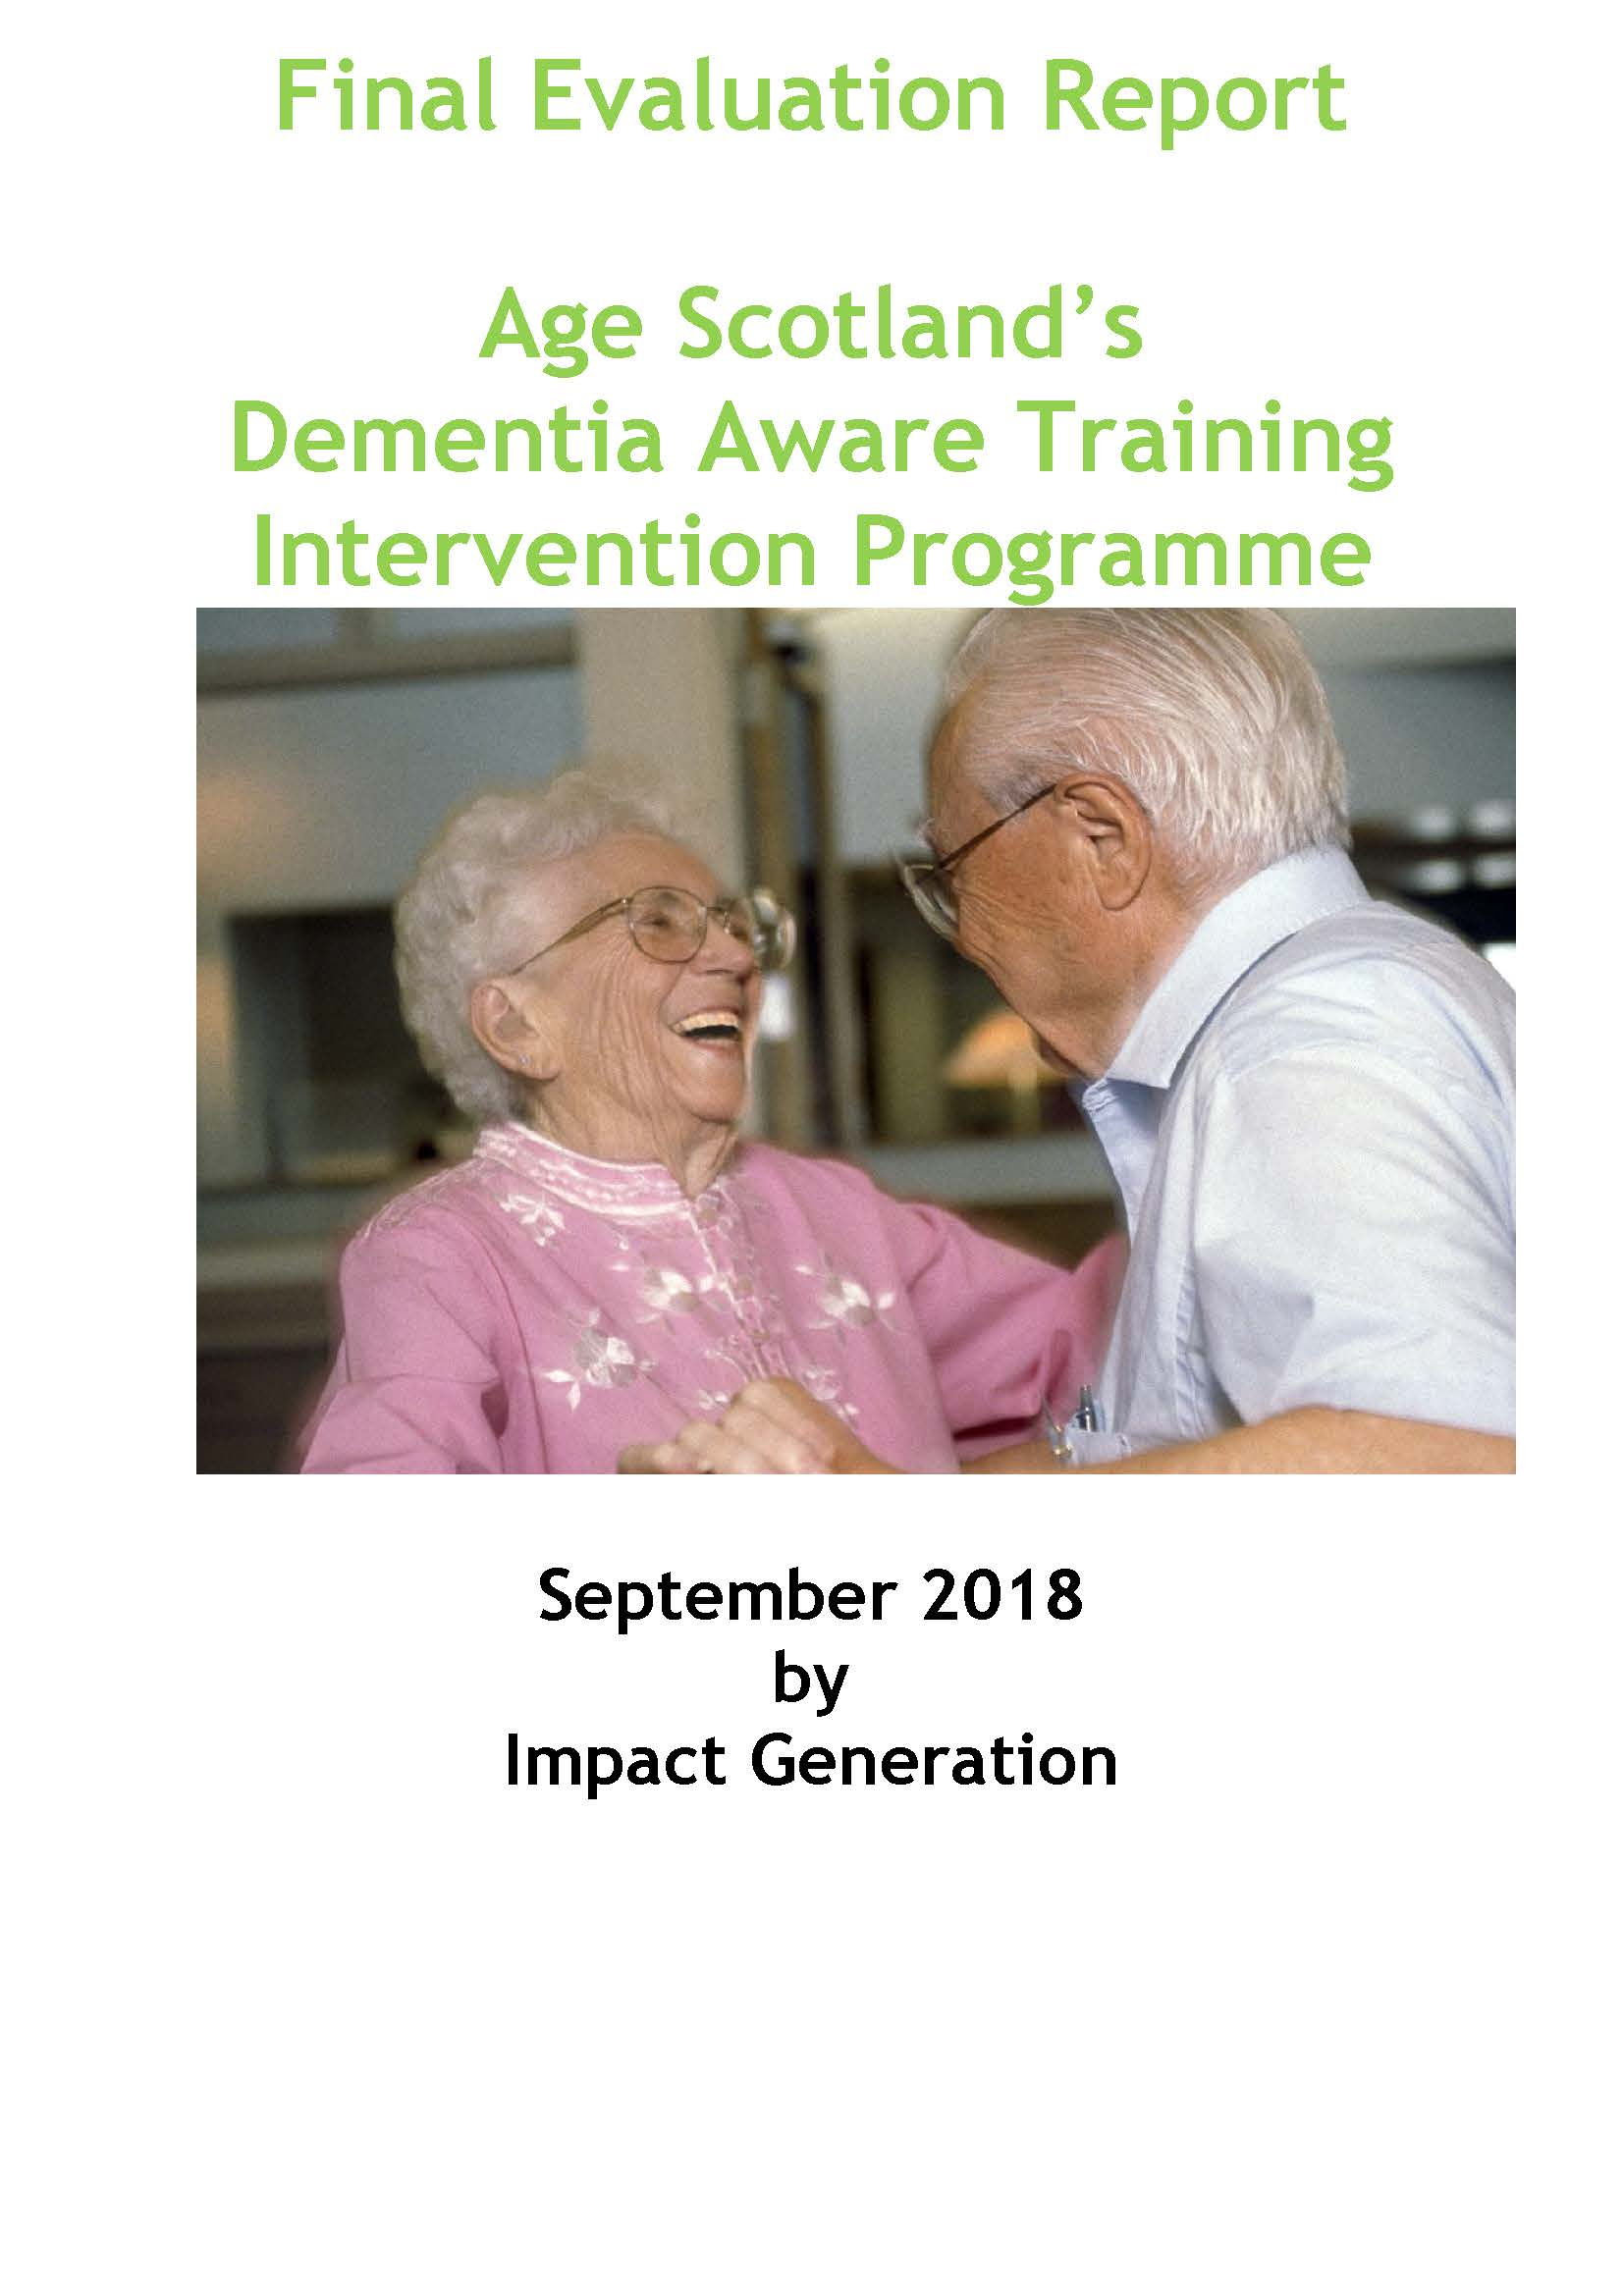 Evaluation Report: Age Scotland's Dementia Aware Training Intervention Programme